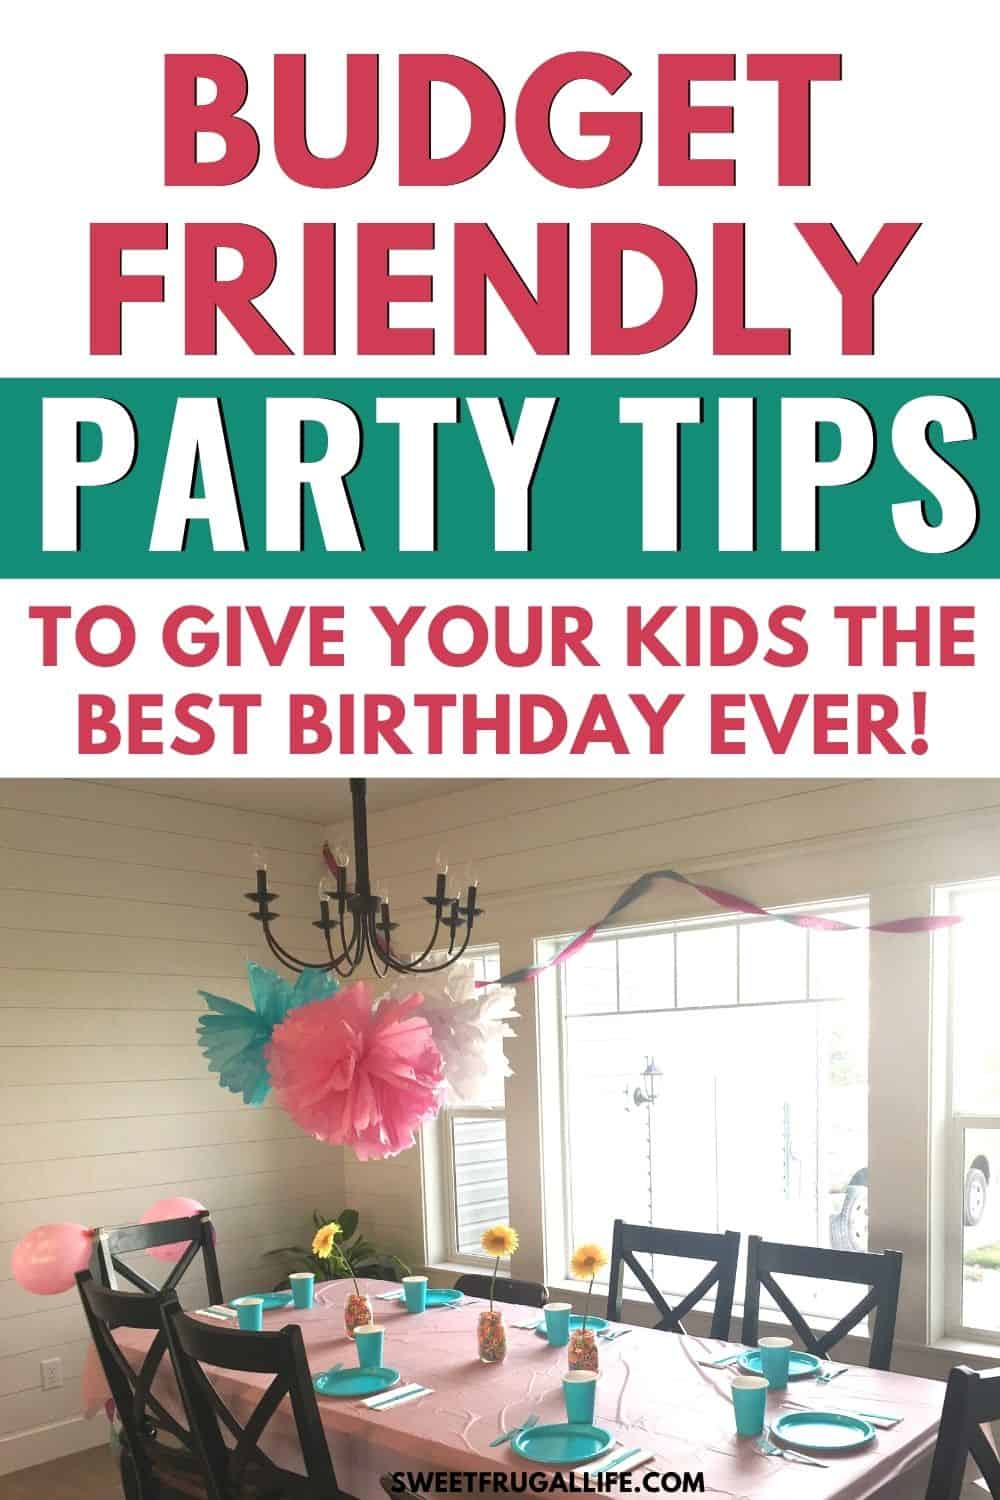 budget friendly party tips - frugal birthday party tips